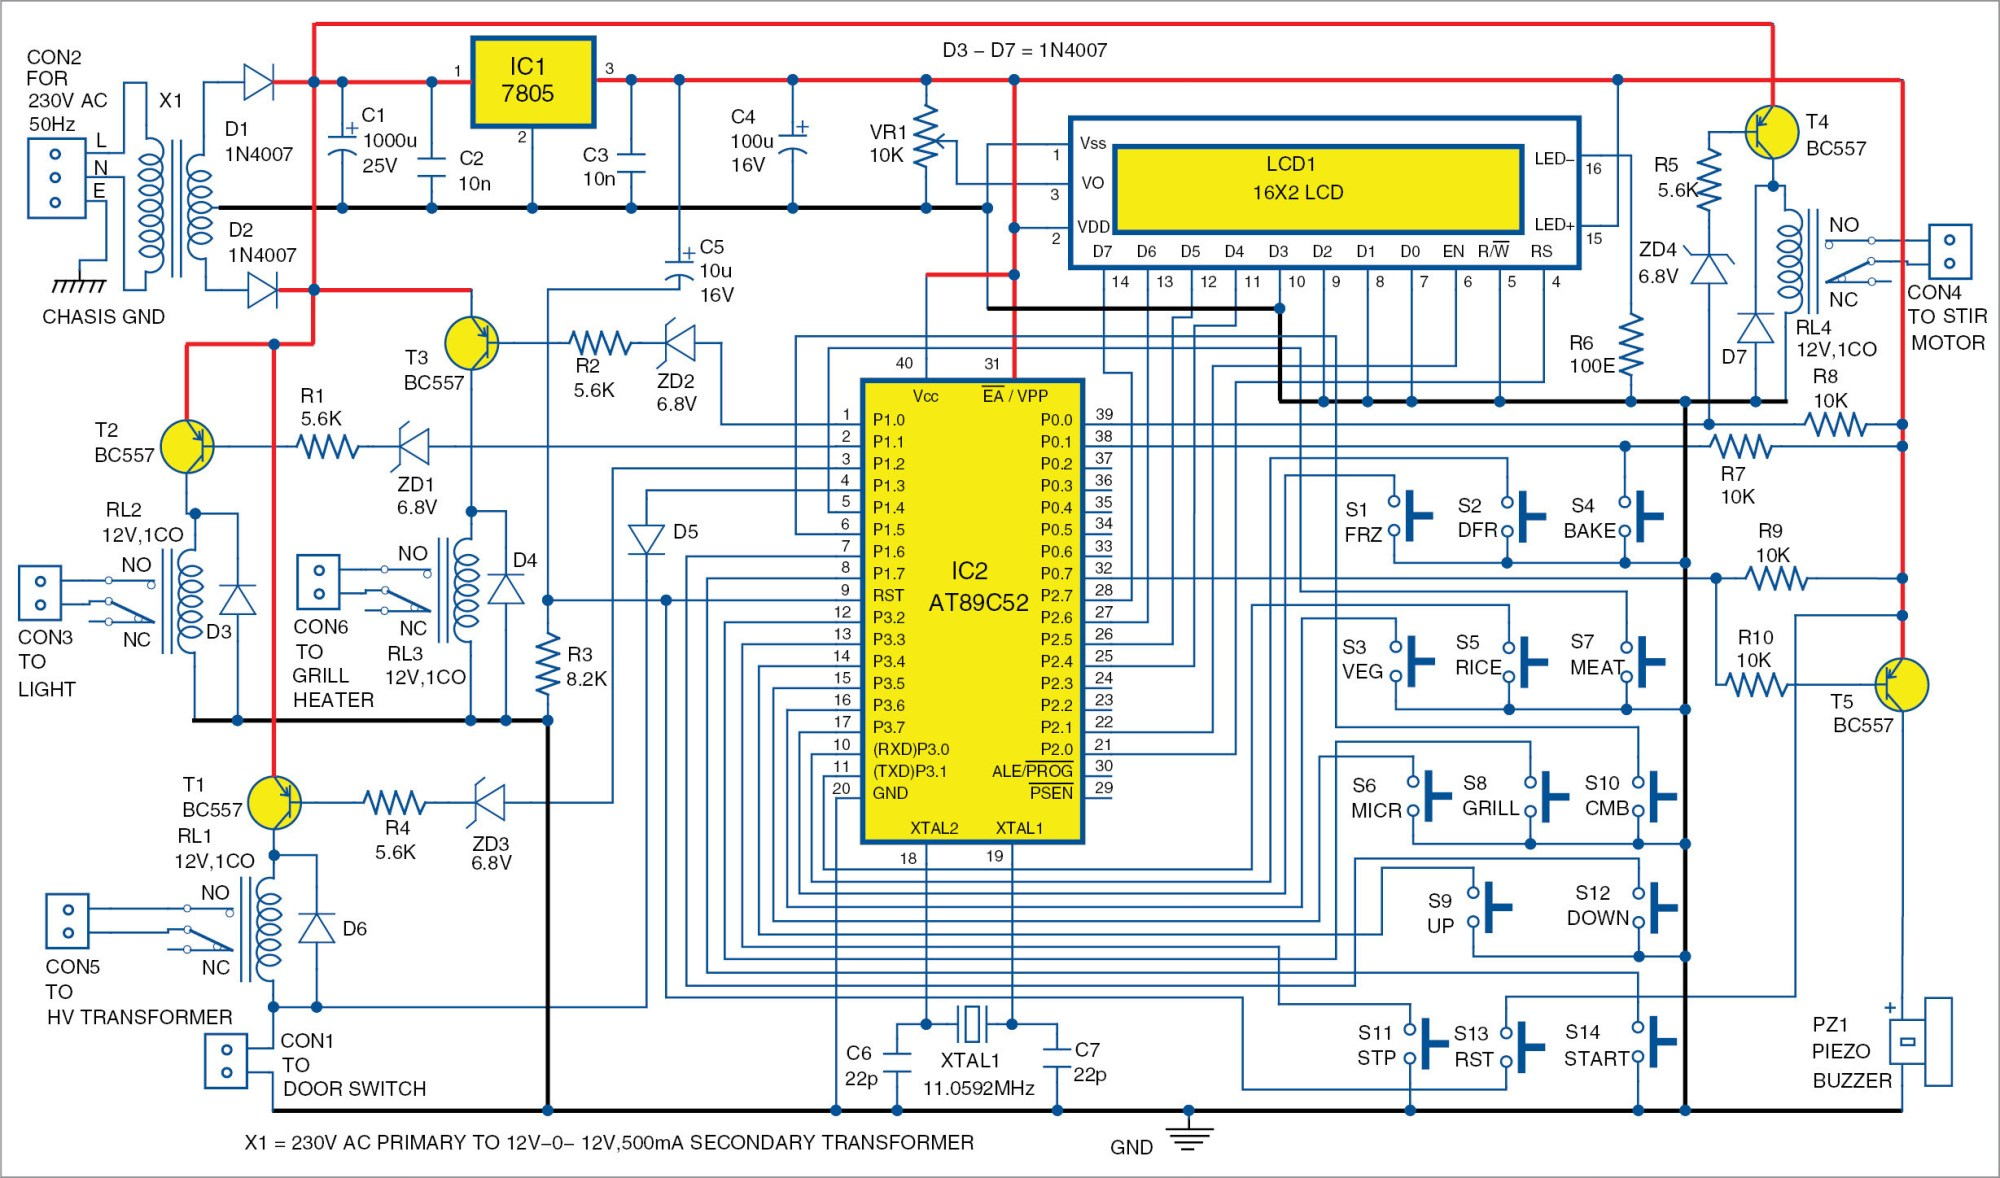 hight resolution of microwave oven wiring diagram wiring diagram toolbox microwave oven control board full electronics project microwave oven